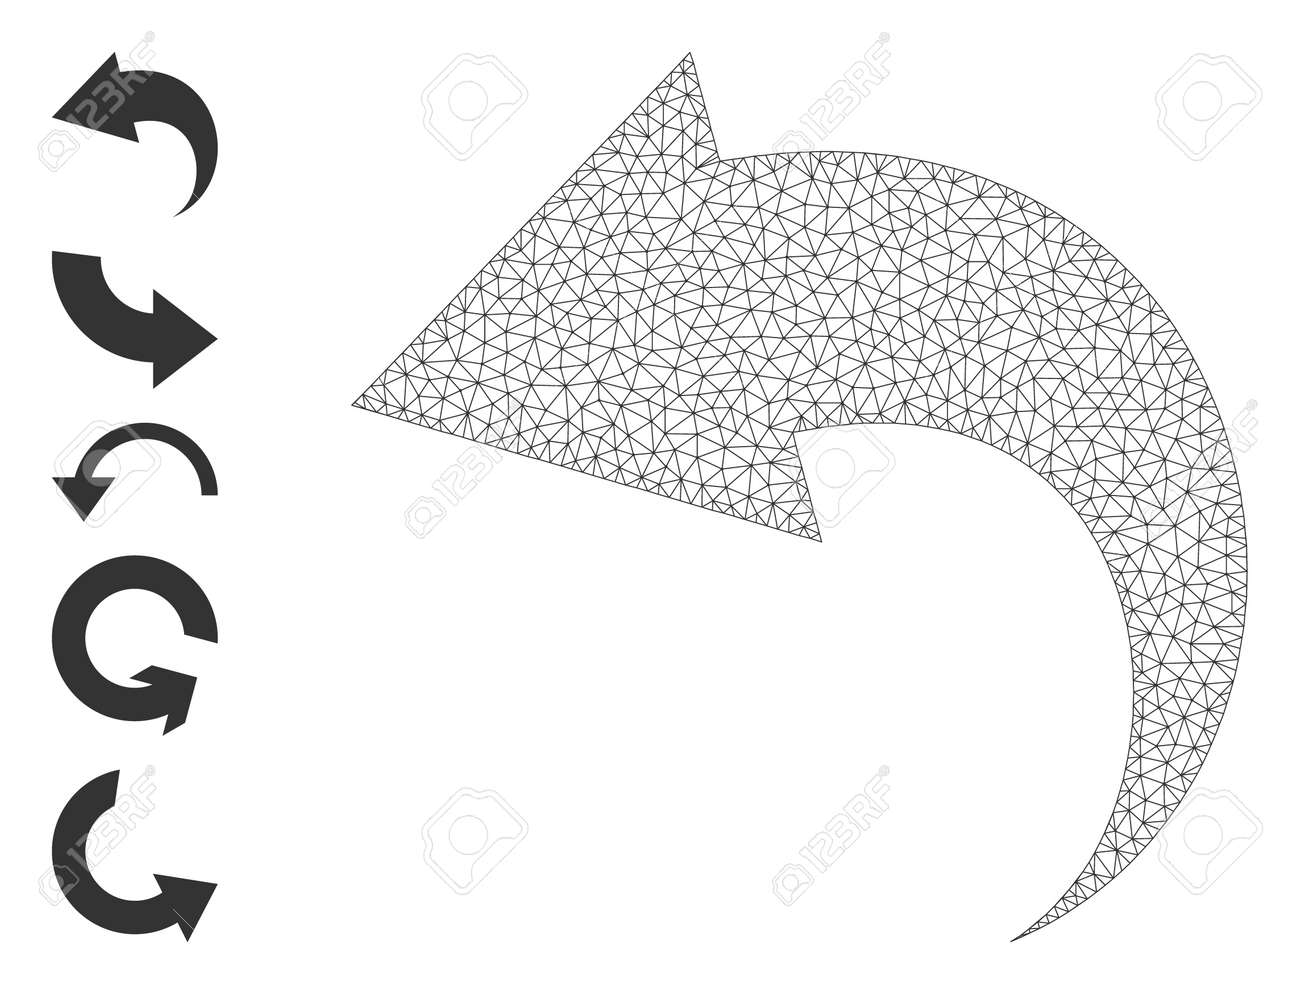 Mesh polygonal undo icon with simple carcass created from undo vector illustration. Carcass mesh polygonal undo. Linear carcass flat network in vector format. - 172393880